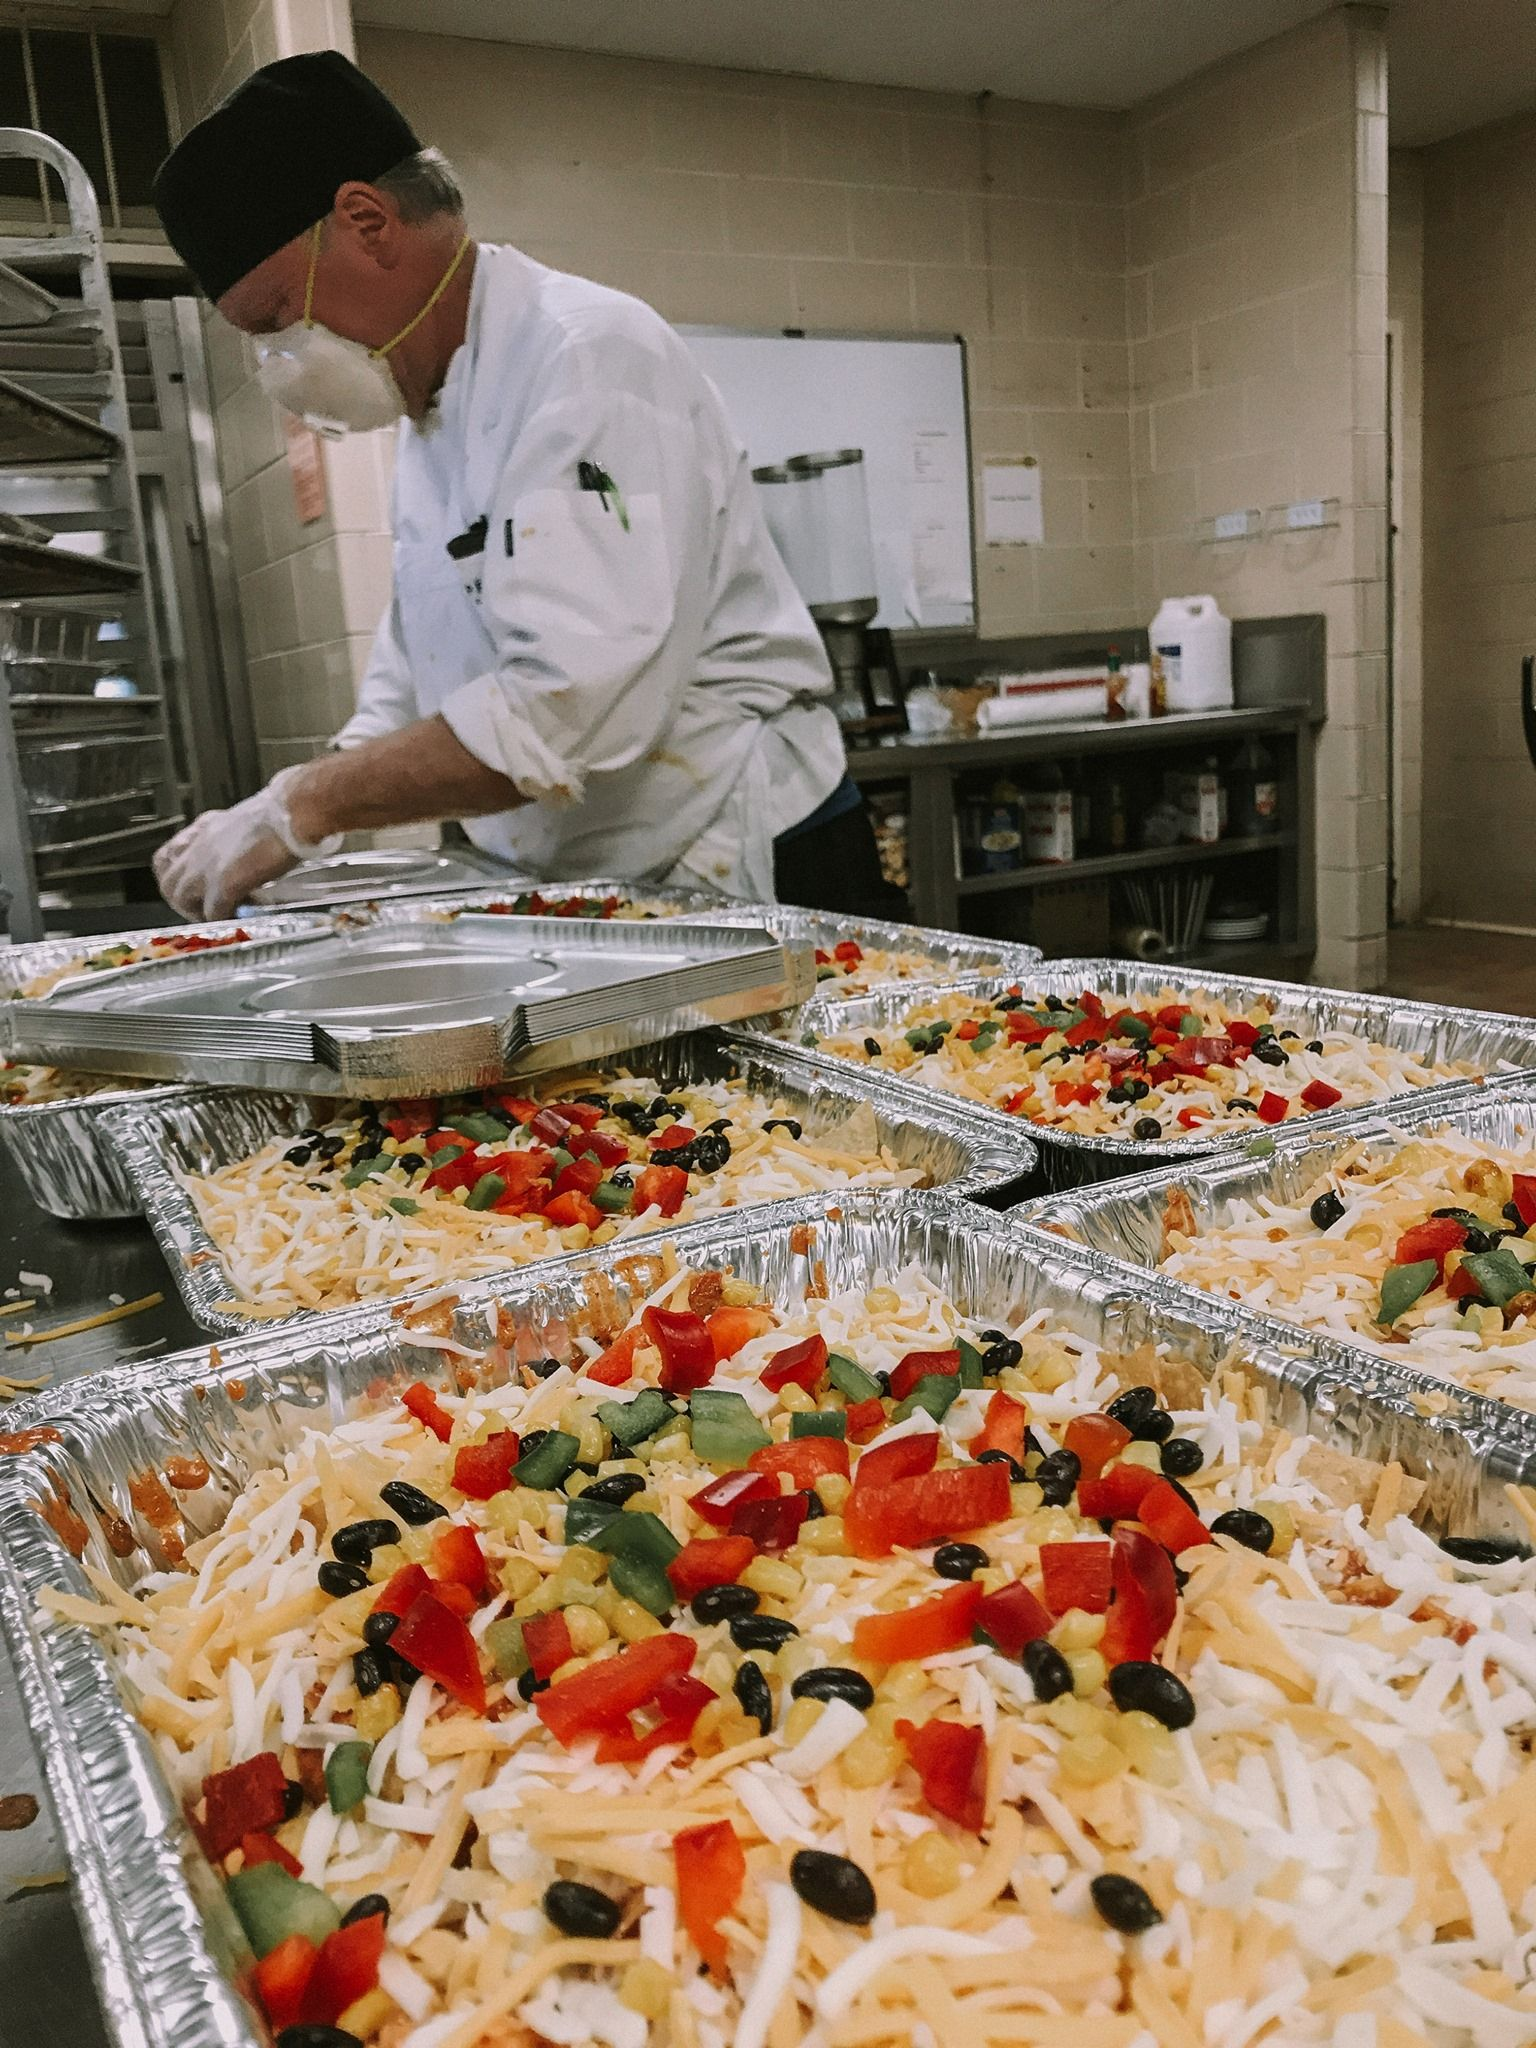 Bon Appetit, in partnership with Wheaton College, is delivering meals to Northwestern Medicine Central DuPage Hospital healthcare workers. Here they are preparing the meals. The new program allows businesses or organizations to purchase meals for front-line people/people otherwise affected by COVID.